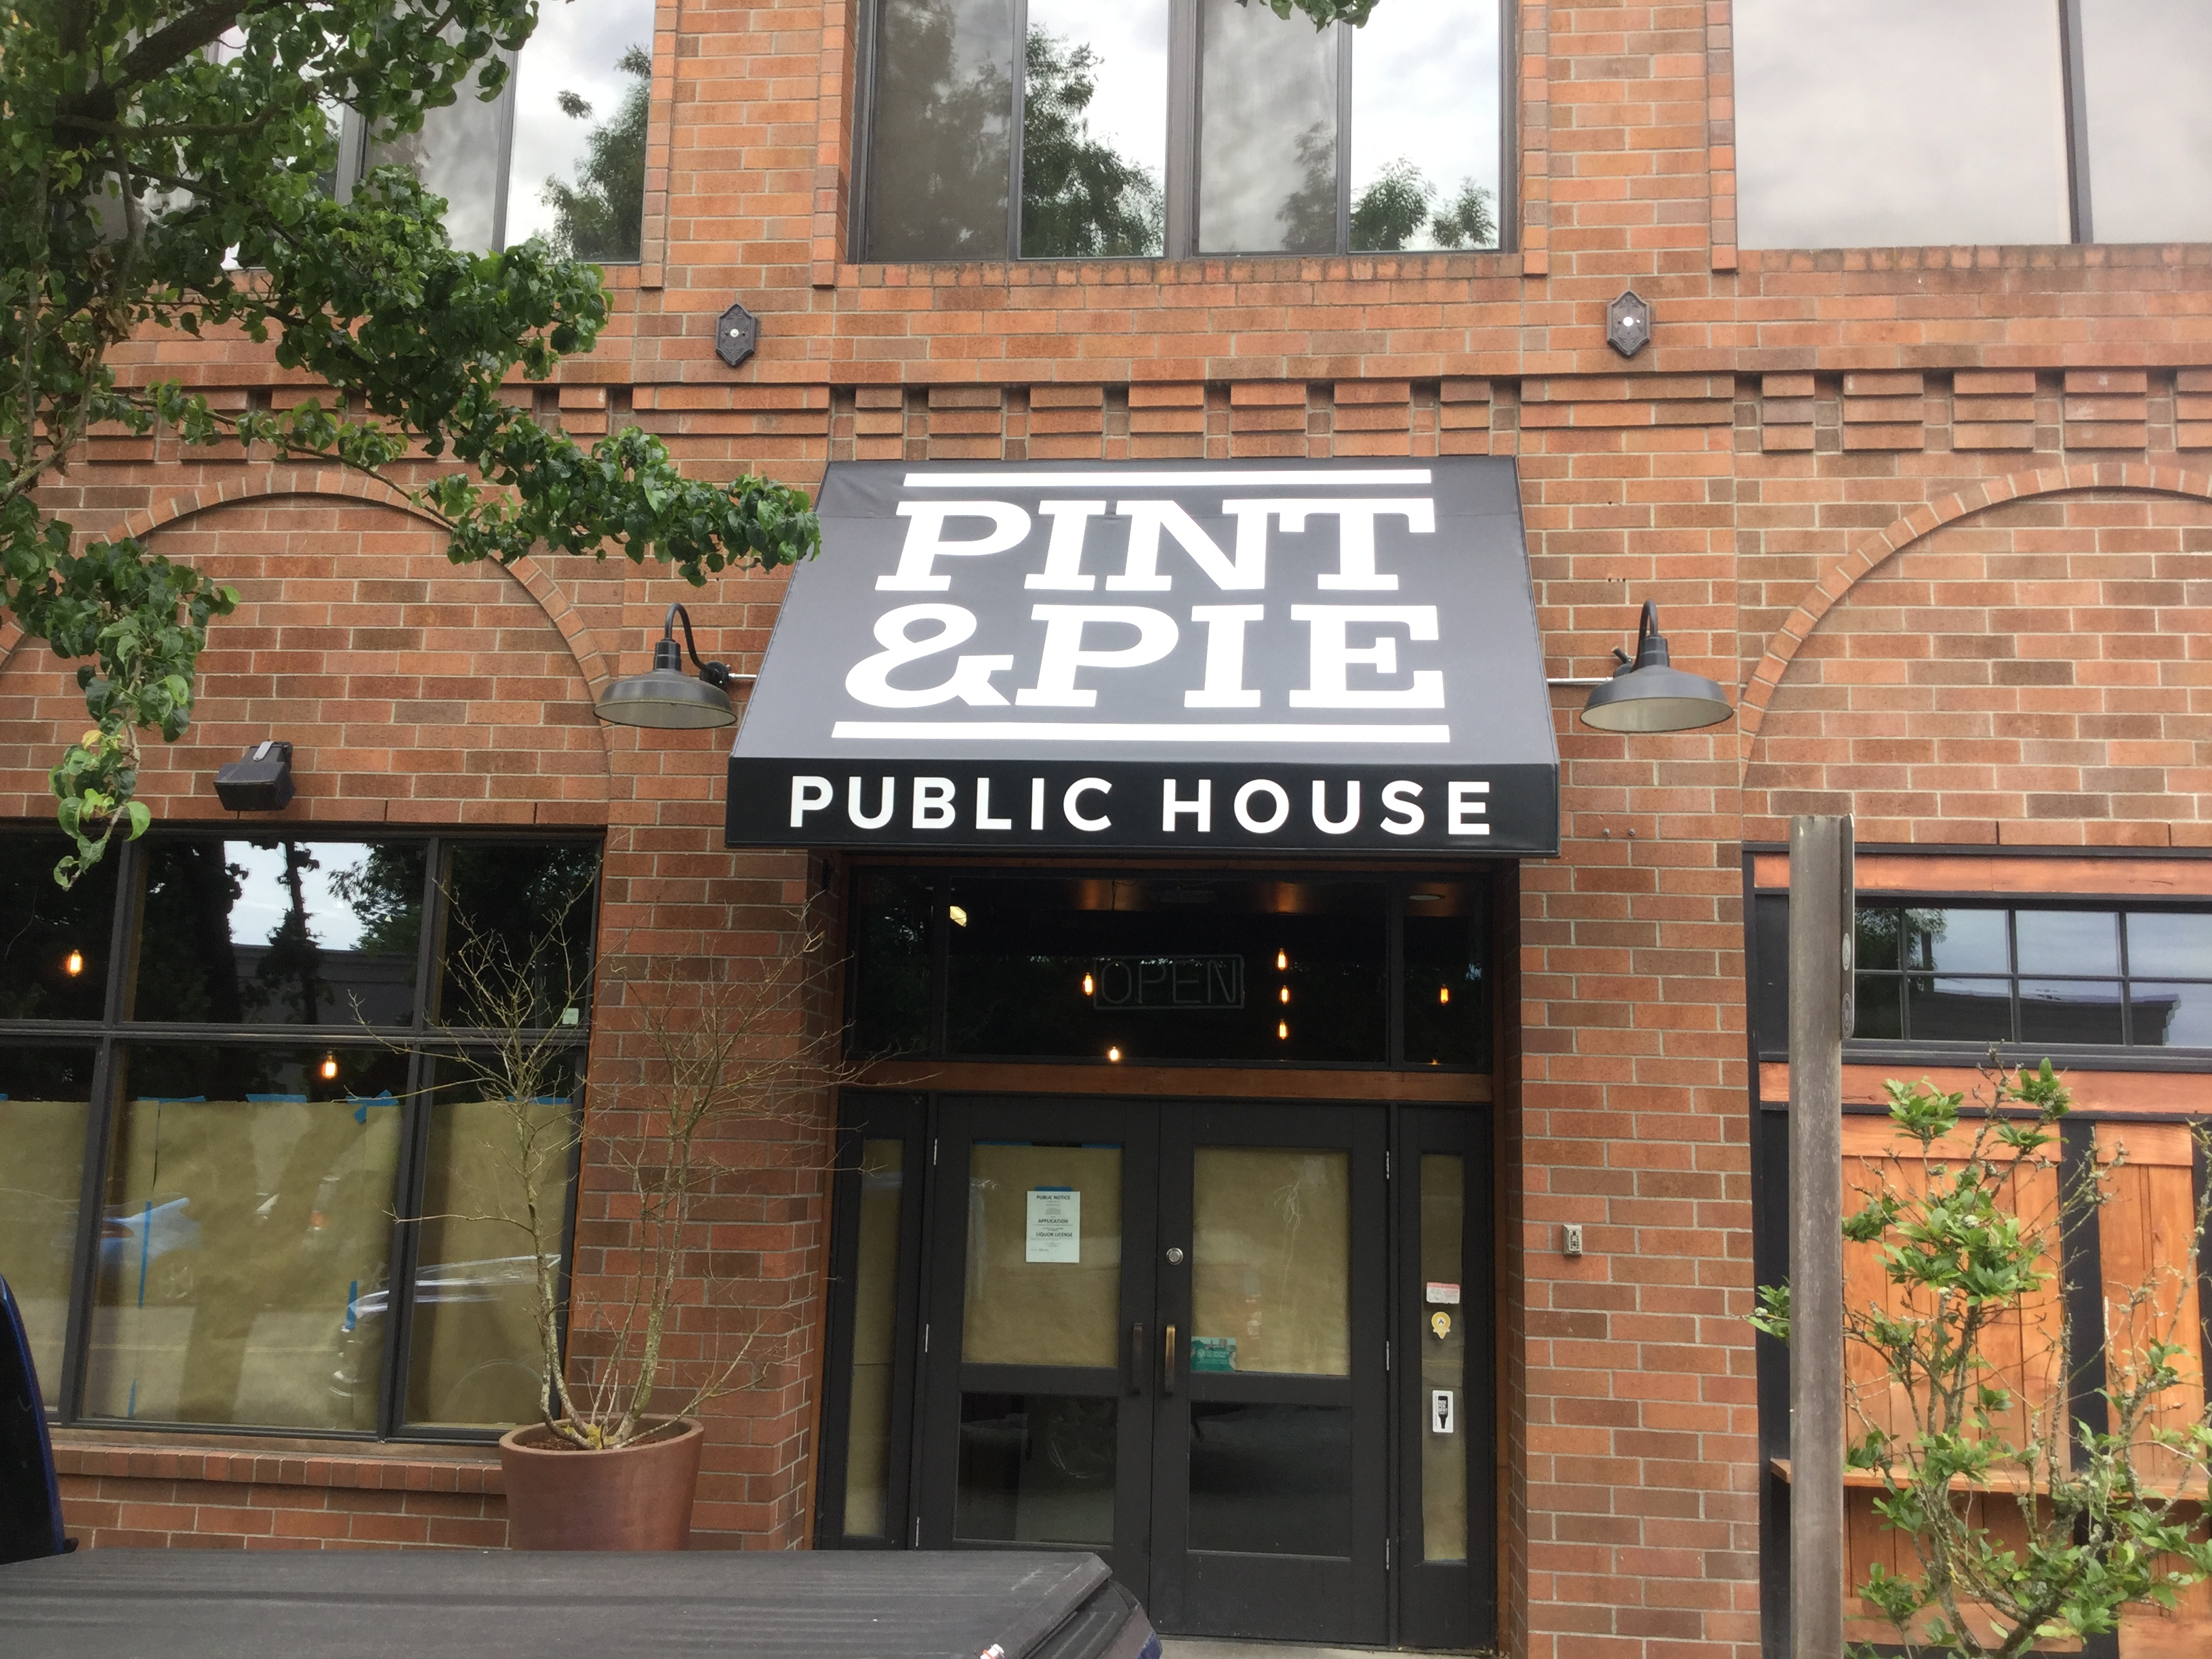 Pint and Pie Public House